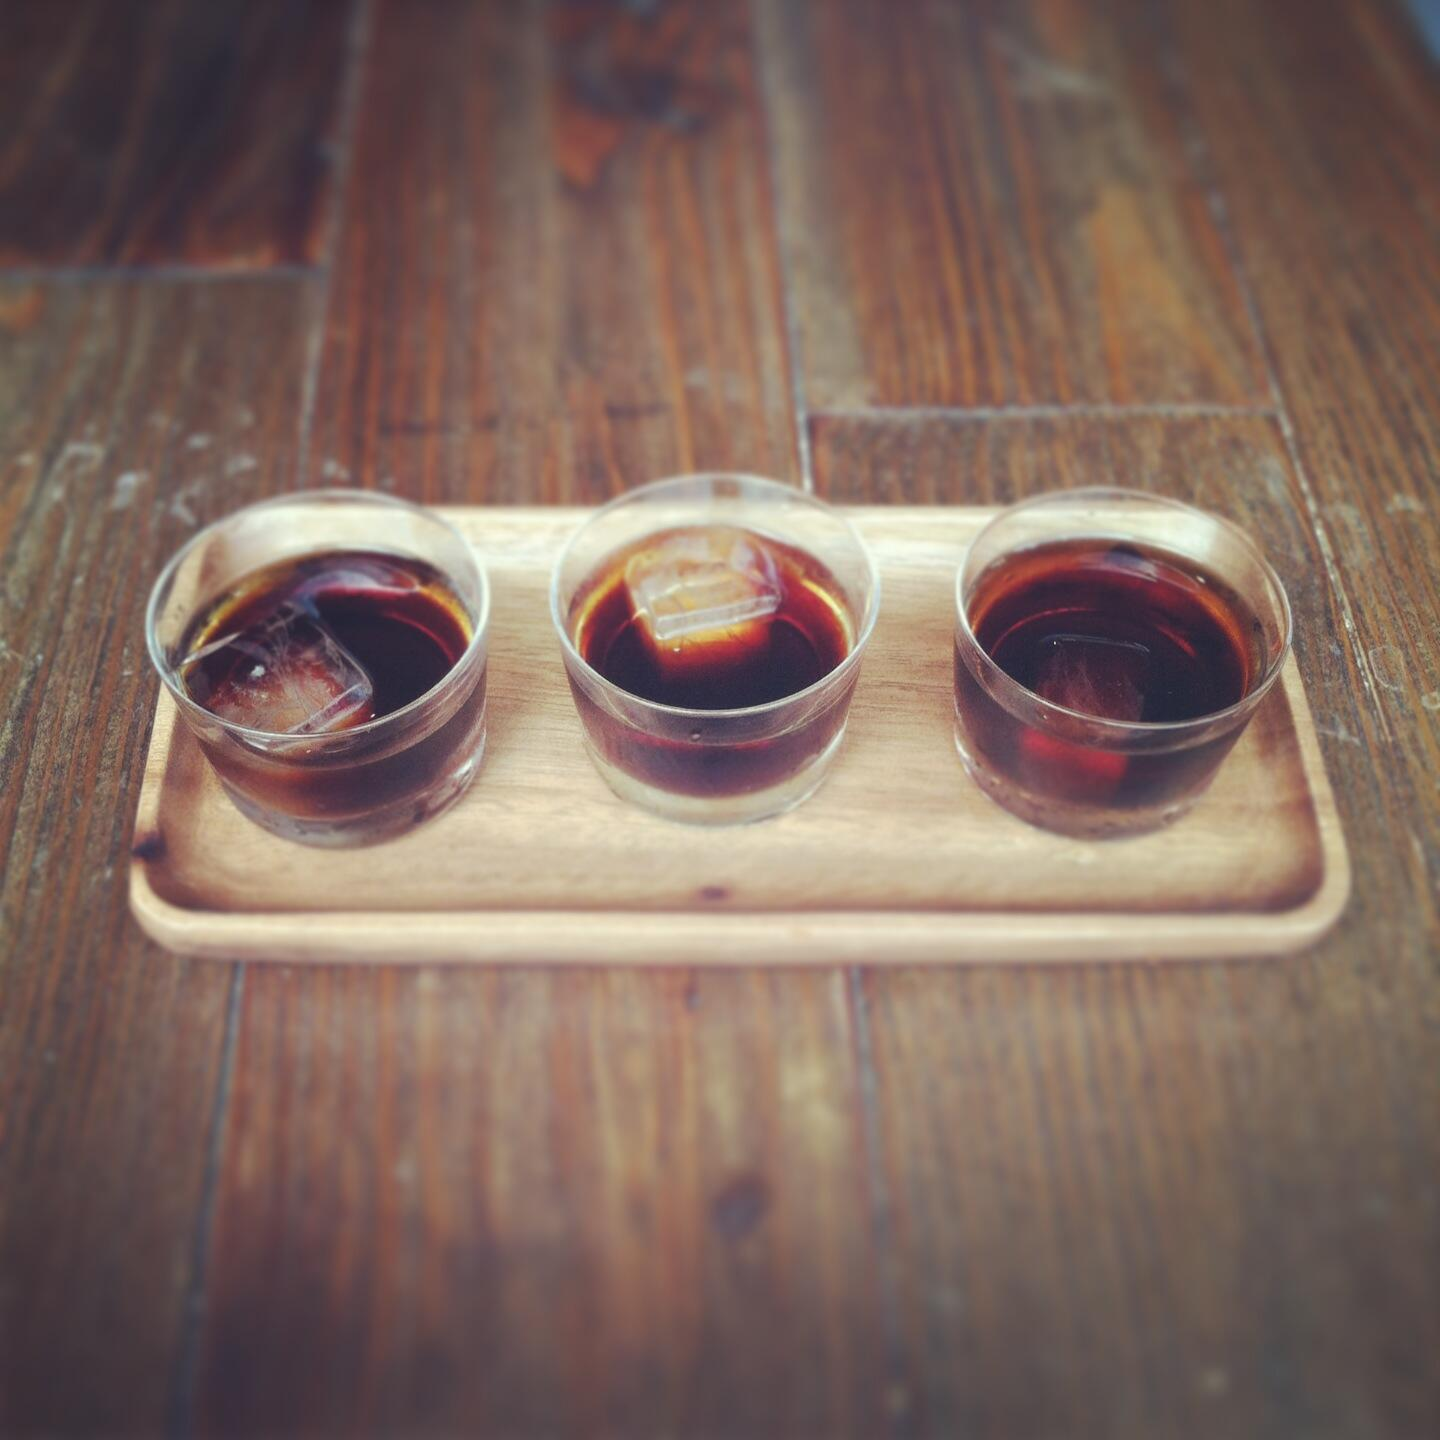 Single origin Oji-style iced coffee flights kick off tomorrow at Berry Street. Consider yourself cordially invited. http://t.co/JK1HxFRjAy